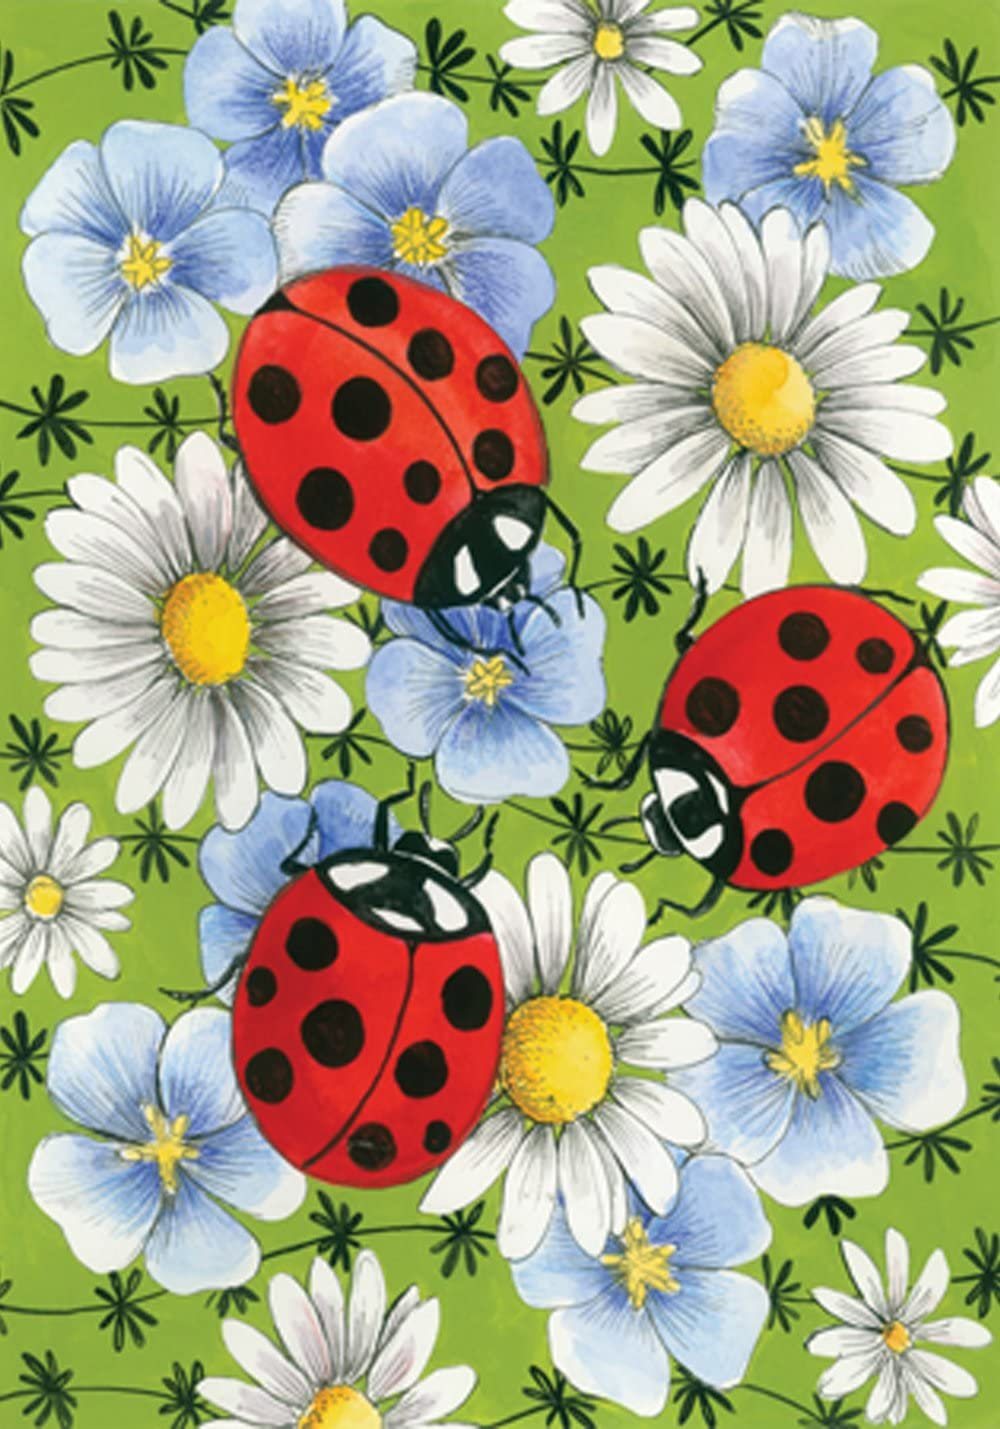 Toland Home Garden Flowers and Ladybugs 12.5 x 18 Inch Decorative Spring Daisy Flower Bug Garden Flag